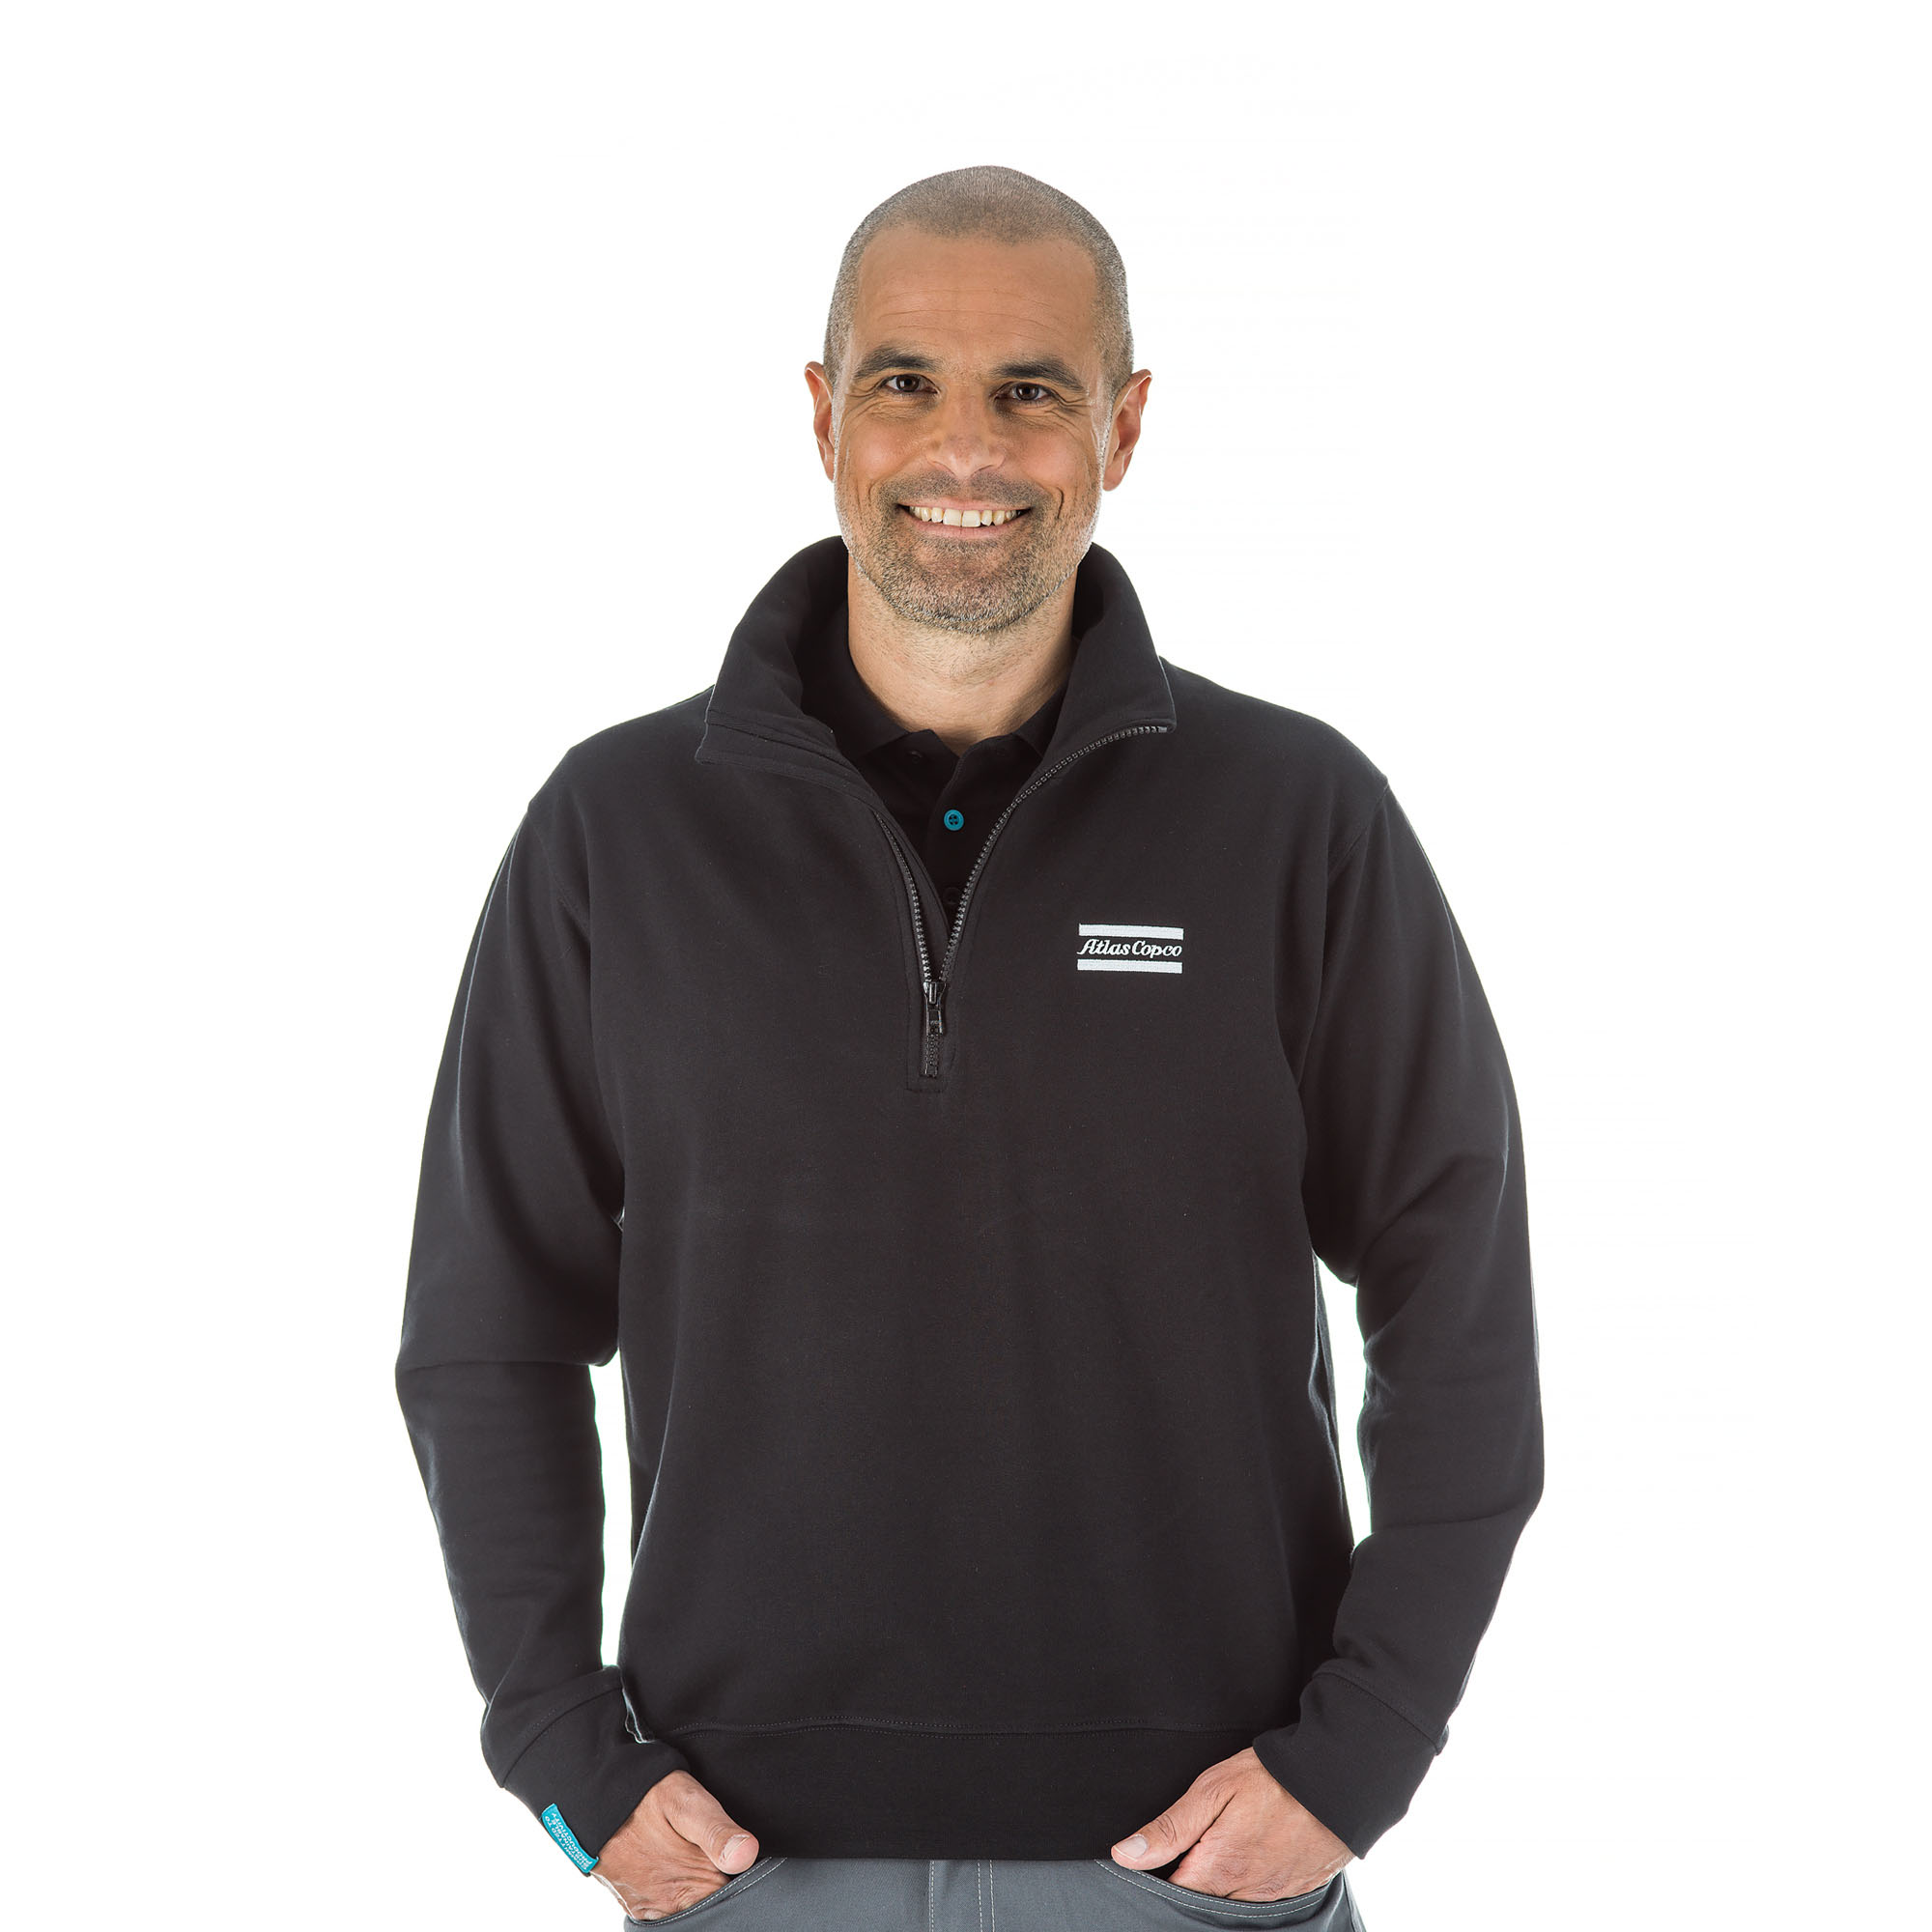 Casual design for everyday comfort. This sweatshirt has a strong, double-needle stitched waistband and Lycra ribbing at sleeve cuffs with the Atlas Copco logo embroidered on the front. This garment can be washed at 60 degrees.<br><br>